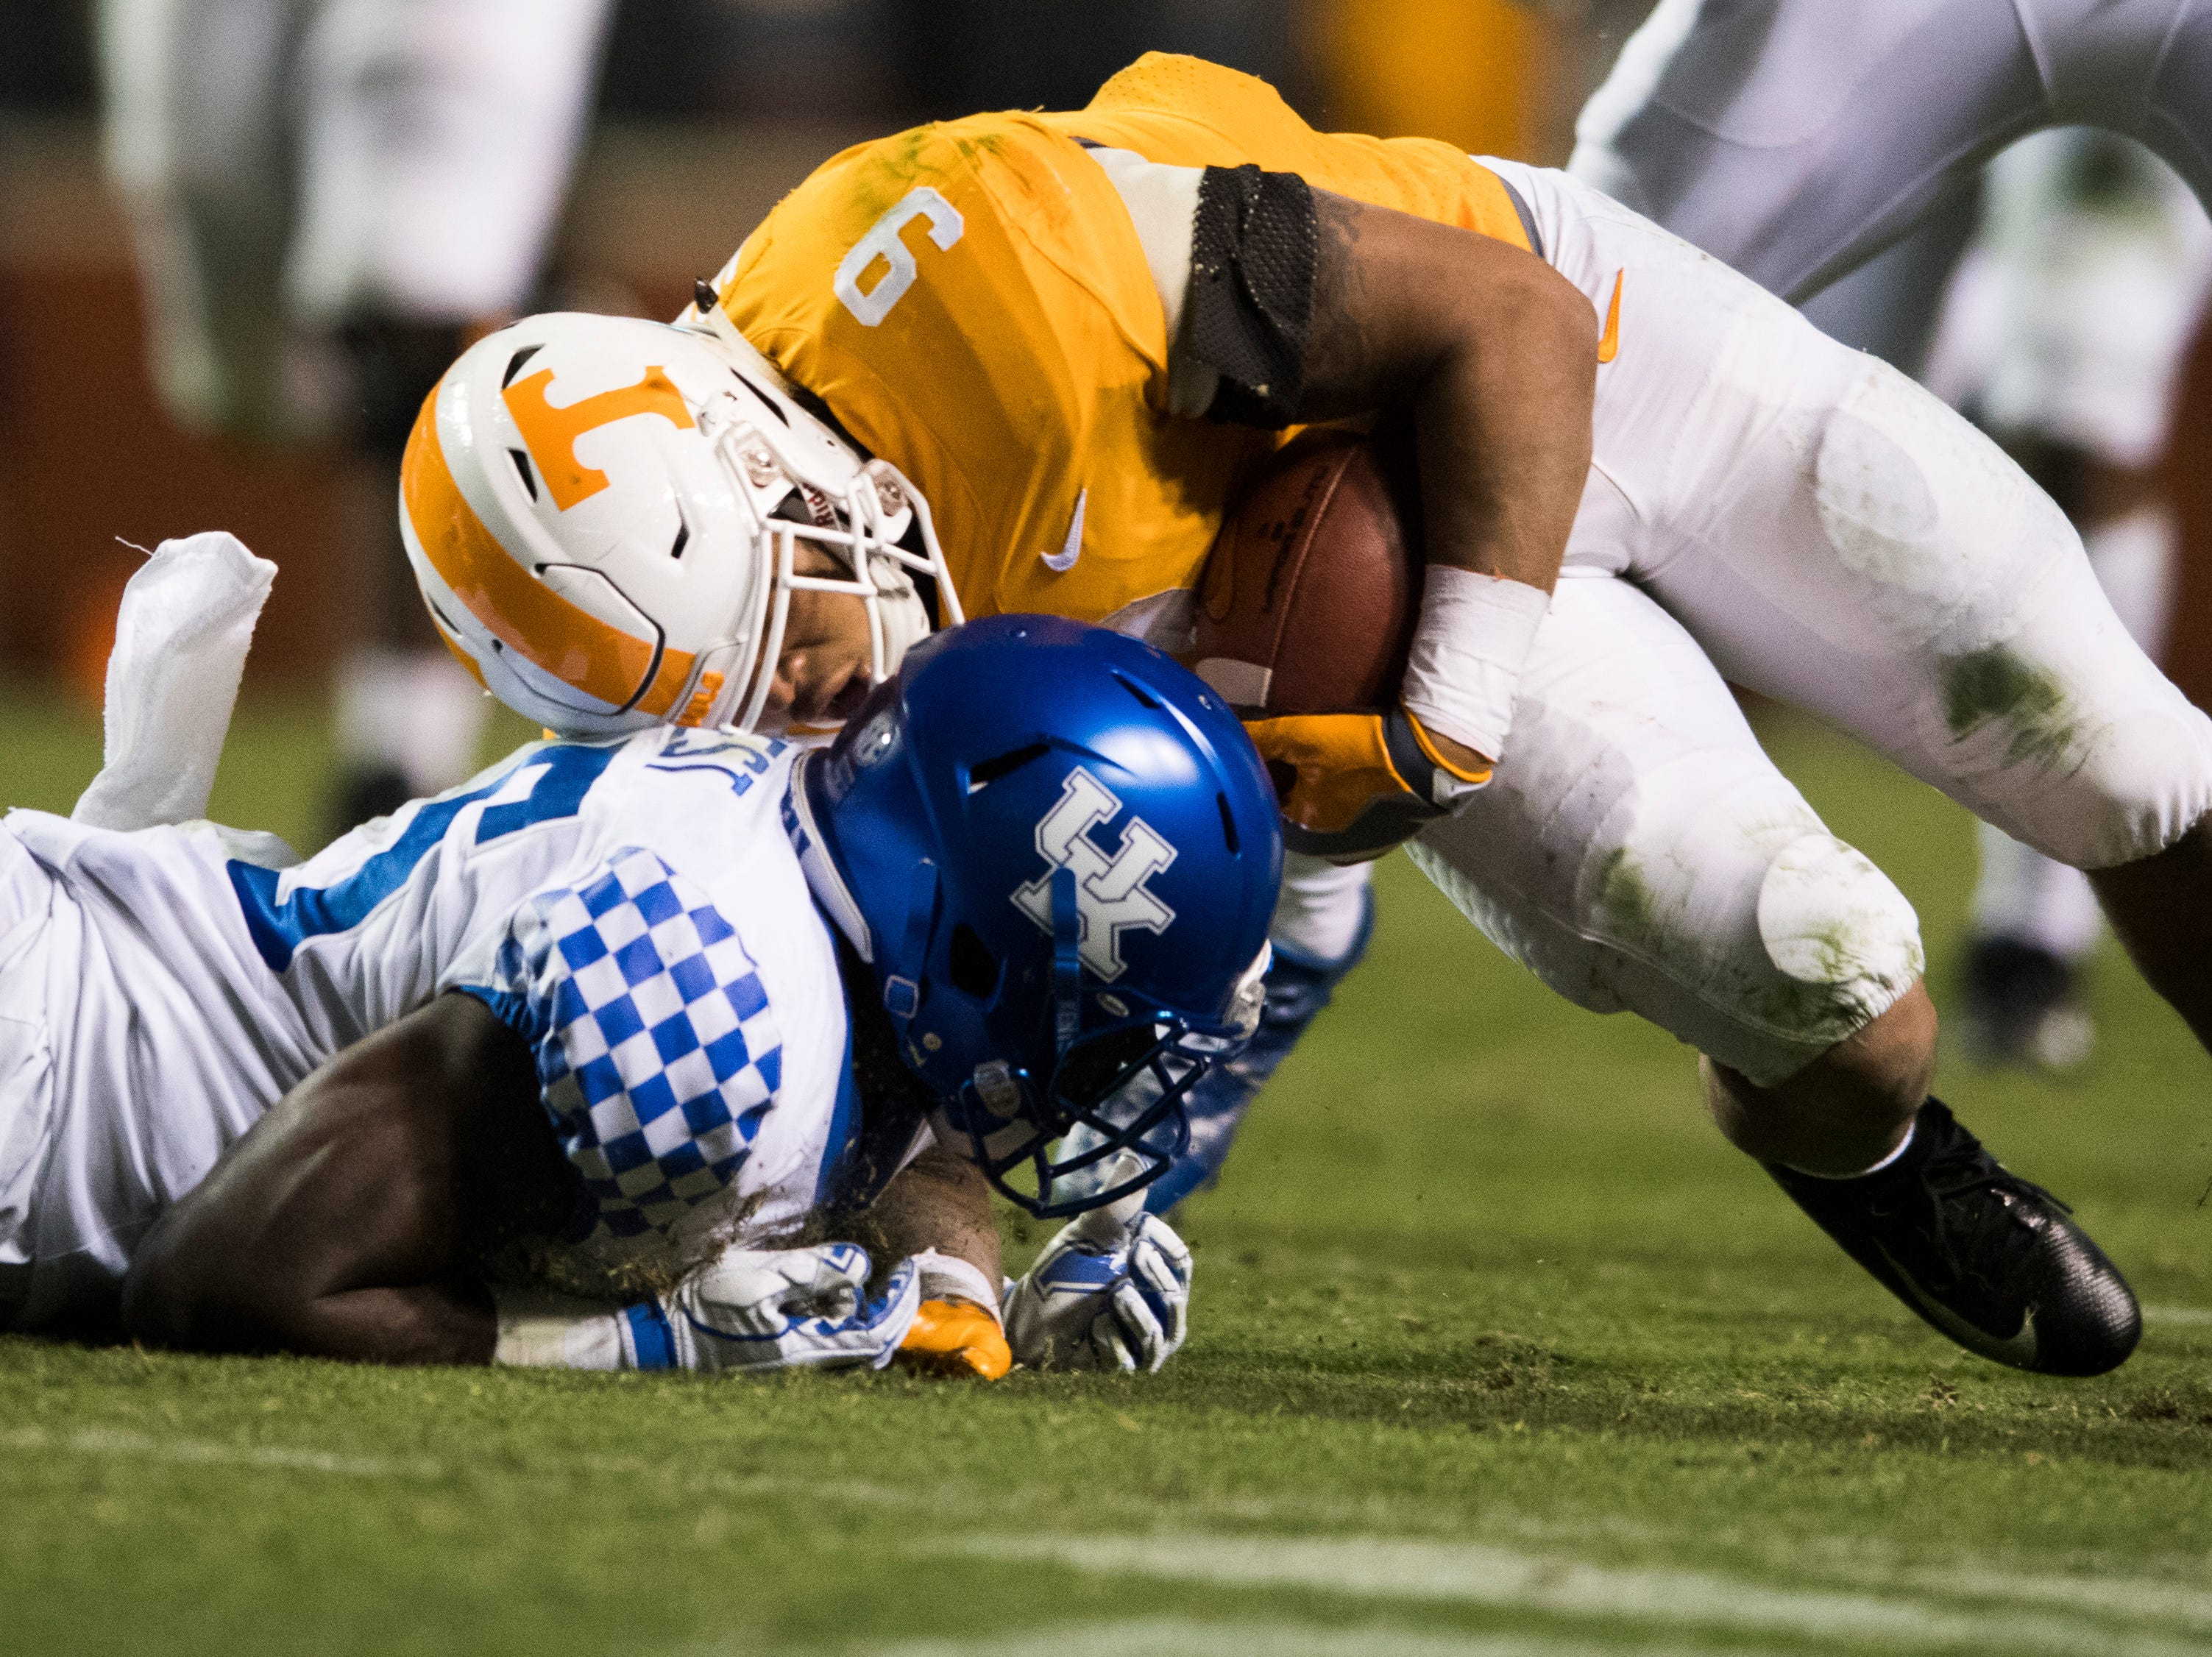 Tennessee running back Tim Jordan (9) keeps running as Kentucky safety Darius West (25) tries to tackle him to the ground  during a game between Tennessee and Kentucky at Neyland Stadium in Knoxville, Tennessee on Saturday, November 10, 2018.